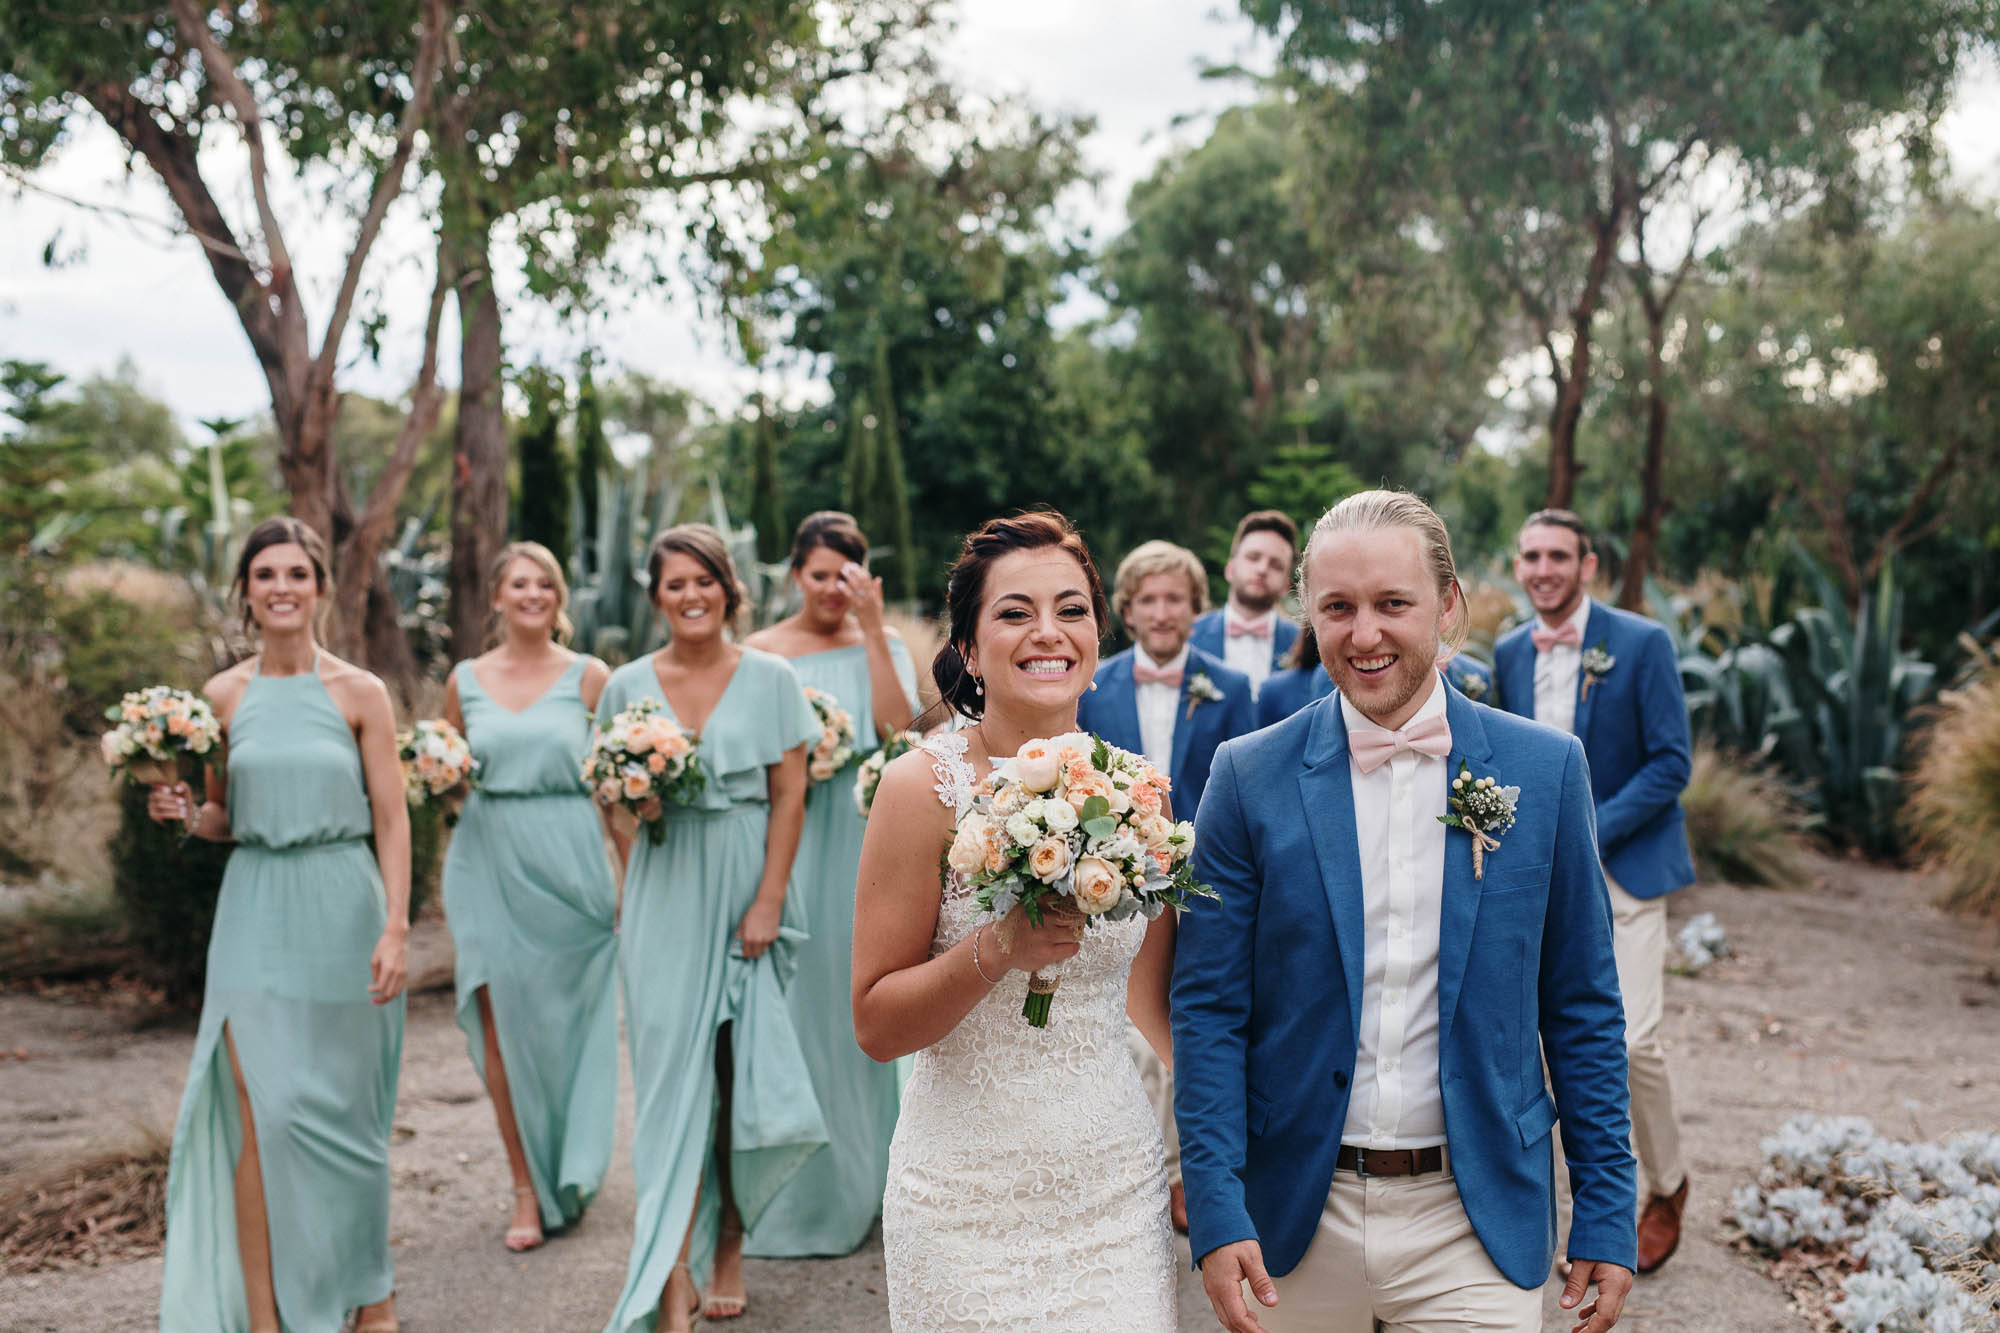 candid-weddinng-photography-melbounre-mornington-peninsula-really-good-weddings-bride-groom734.jpg